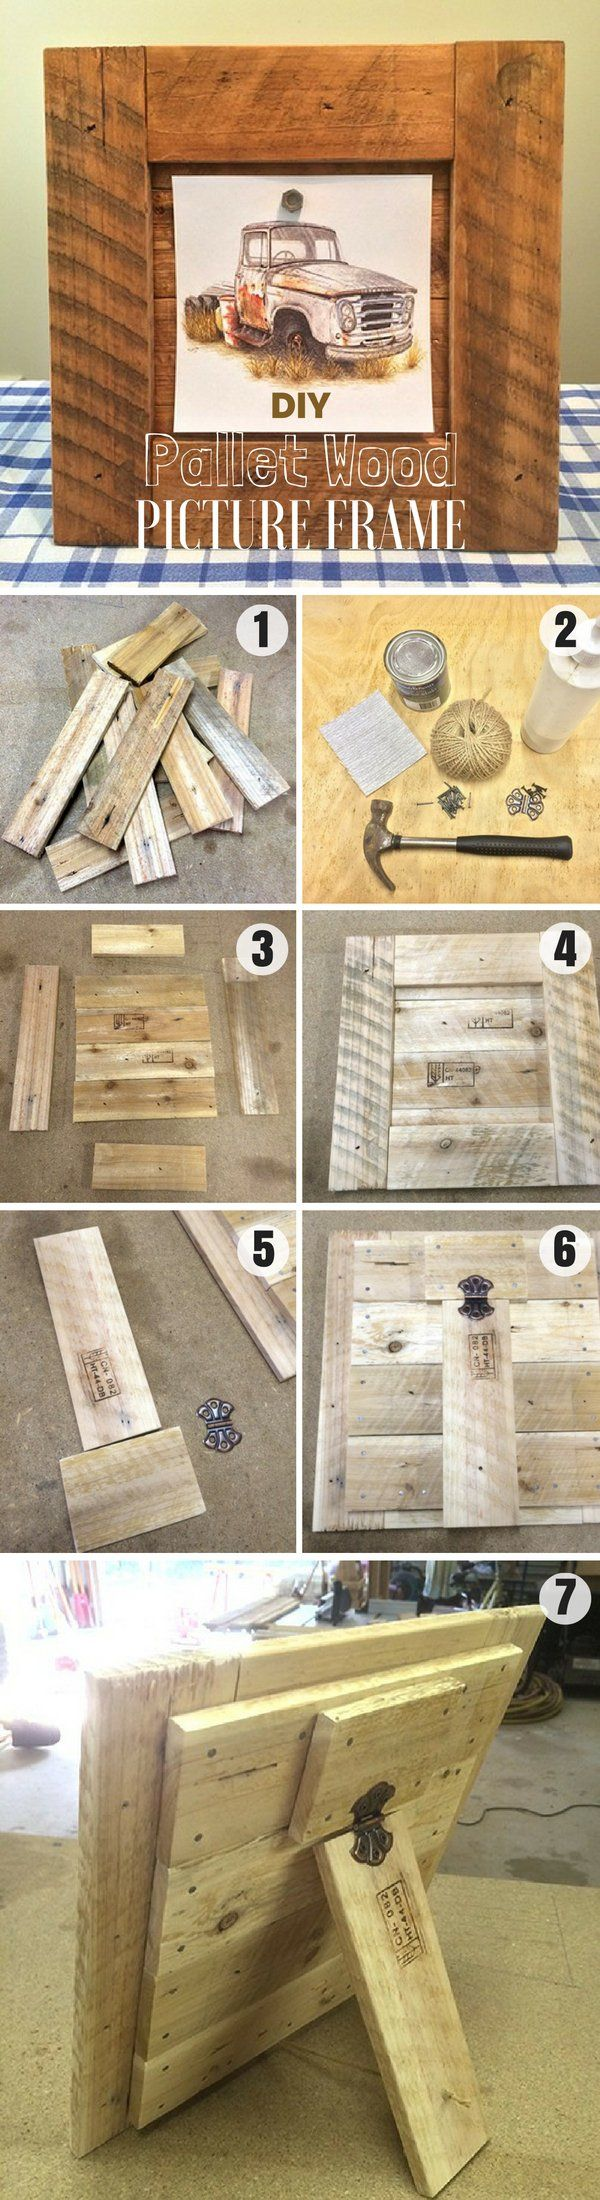 Check out how to make an easy DIY Pallet Wood Picture Frame ...